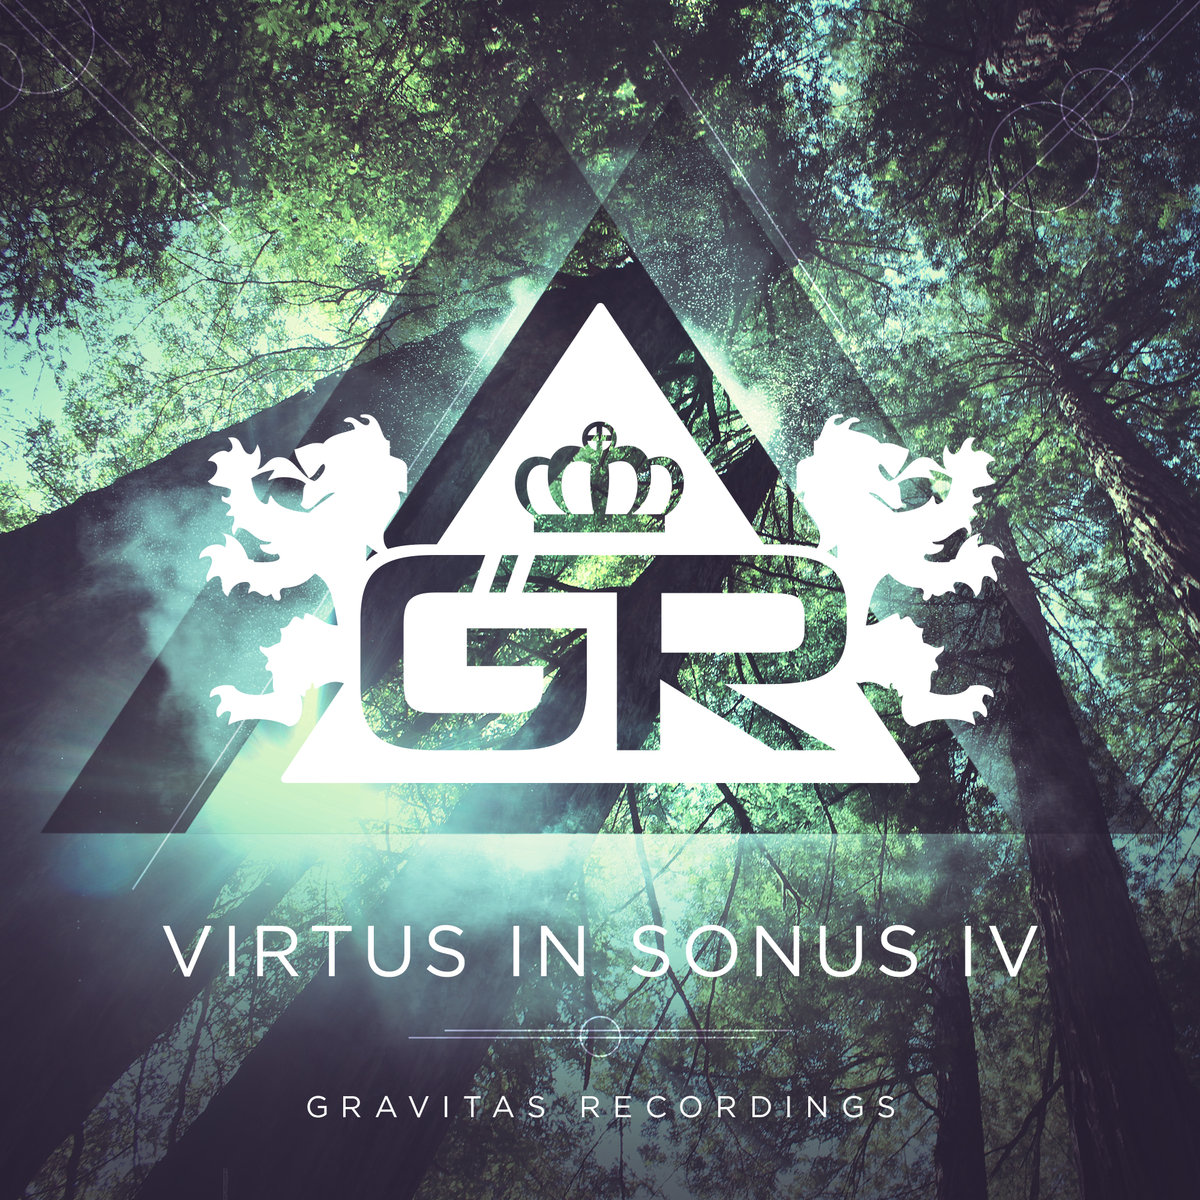 Mr. Bill - Skweeroskiz @ 'Virtus In Sonus IV' album (Austin)